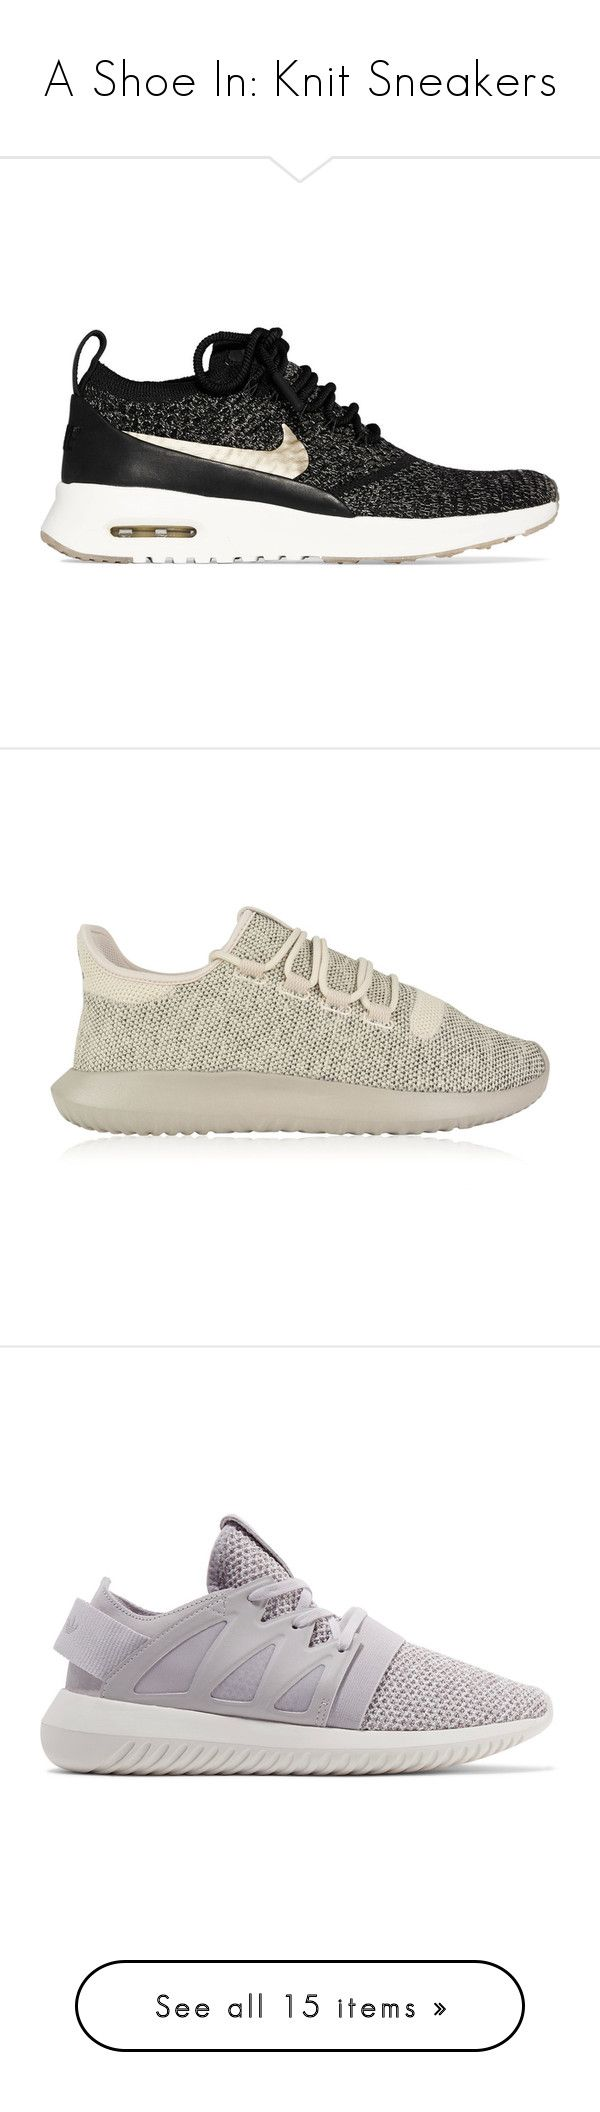 """""""A Shoe In: Knit Sneakers"""" by polyvore-editorial ❤ liked on Polyvore featuring knitsneakers, shoes, sneakers, black, black flyknit trainer, black lace up sneakers, nike sneakers, black leather trainers, nike shoes and fleece-lined shoes"""